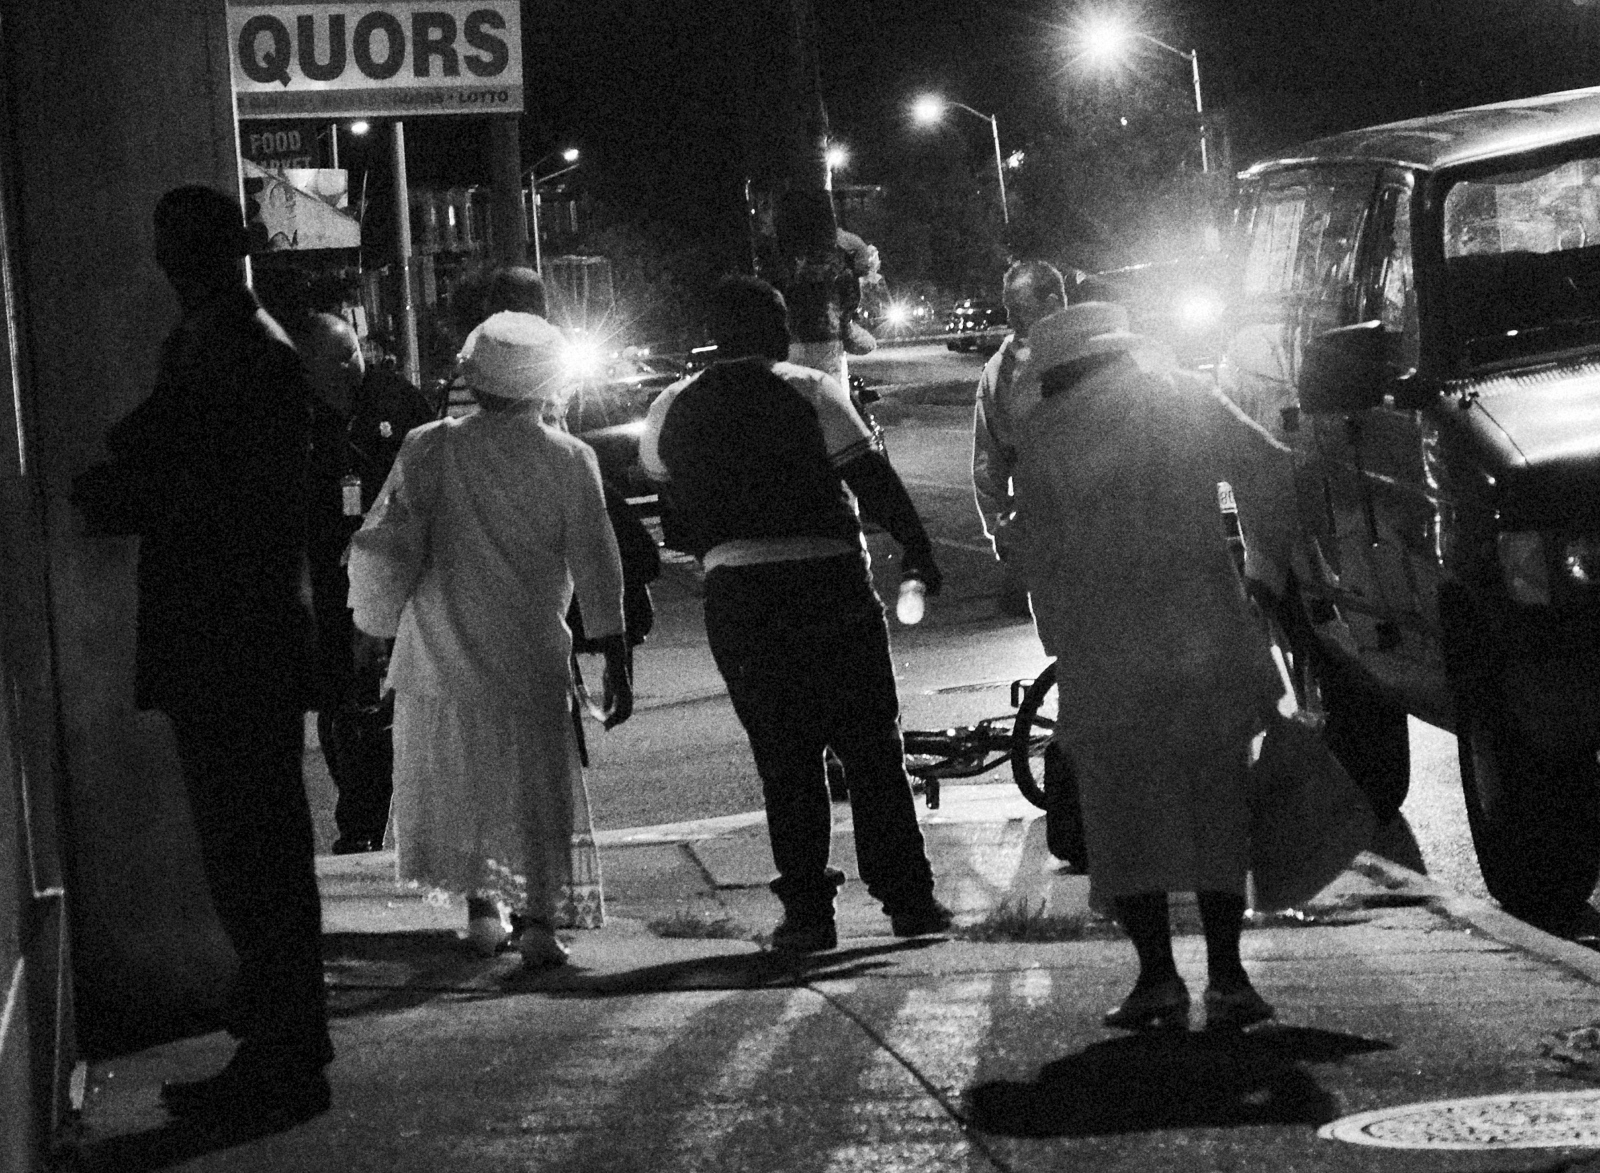 Late night church goers walk through a shooting scene in West Baltimore's Park Heights neighborhood on August 18, 2013.